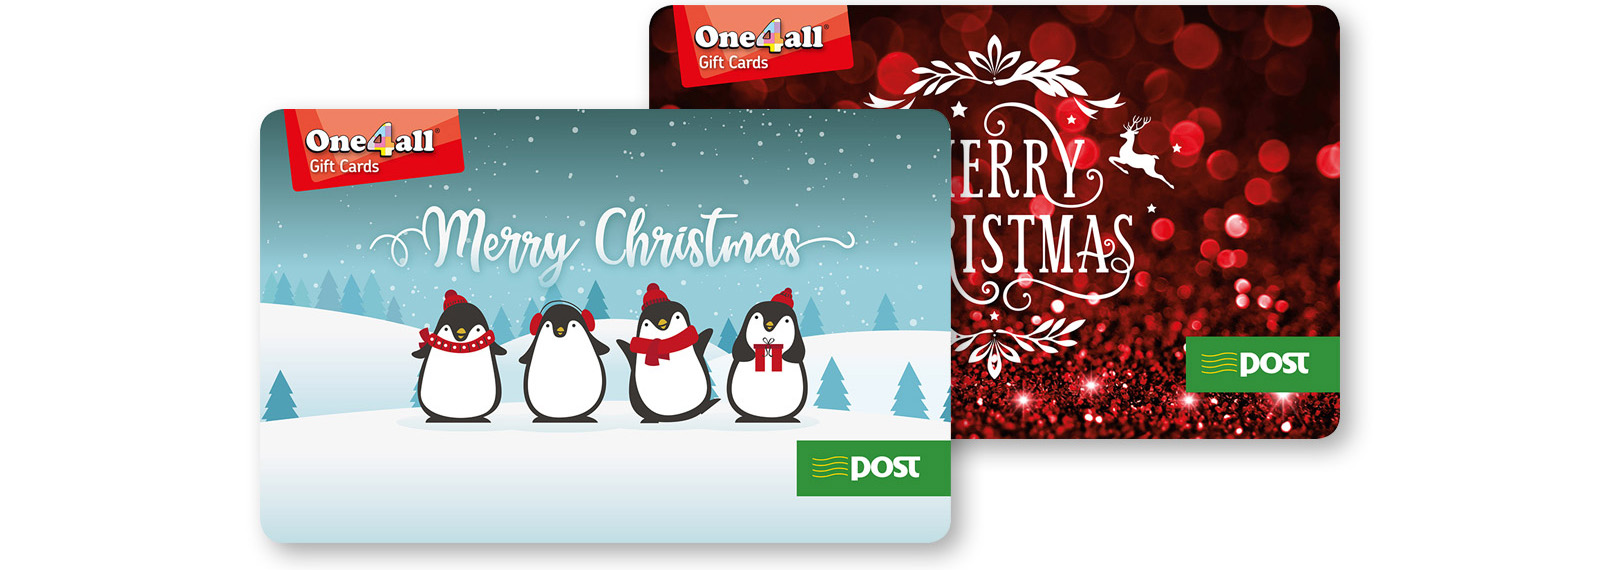 One4All Christmas Gift Cards